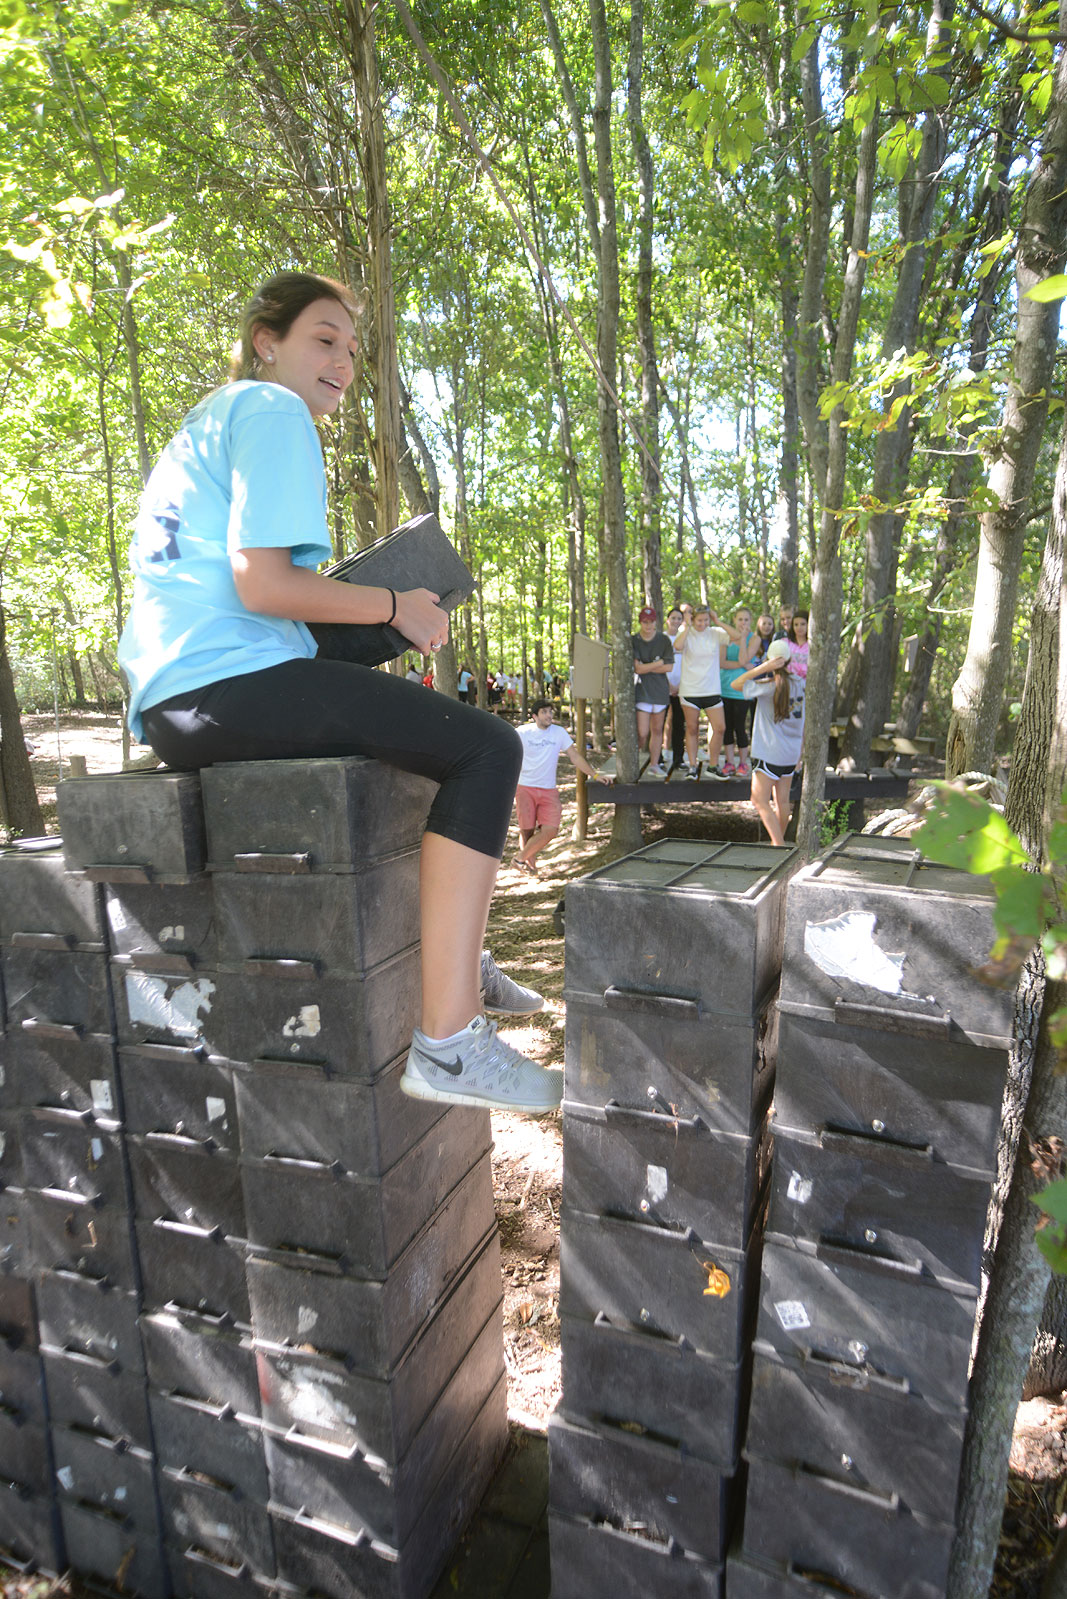 Kappa Kappa Gamma University of South Carolina at Xtreeme Challenge in Charlotte North Carolina